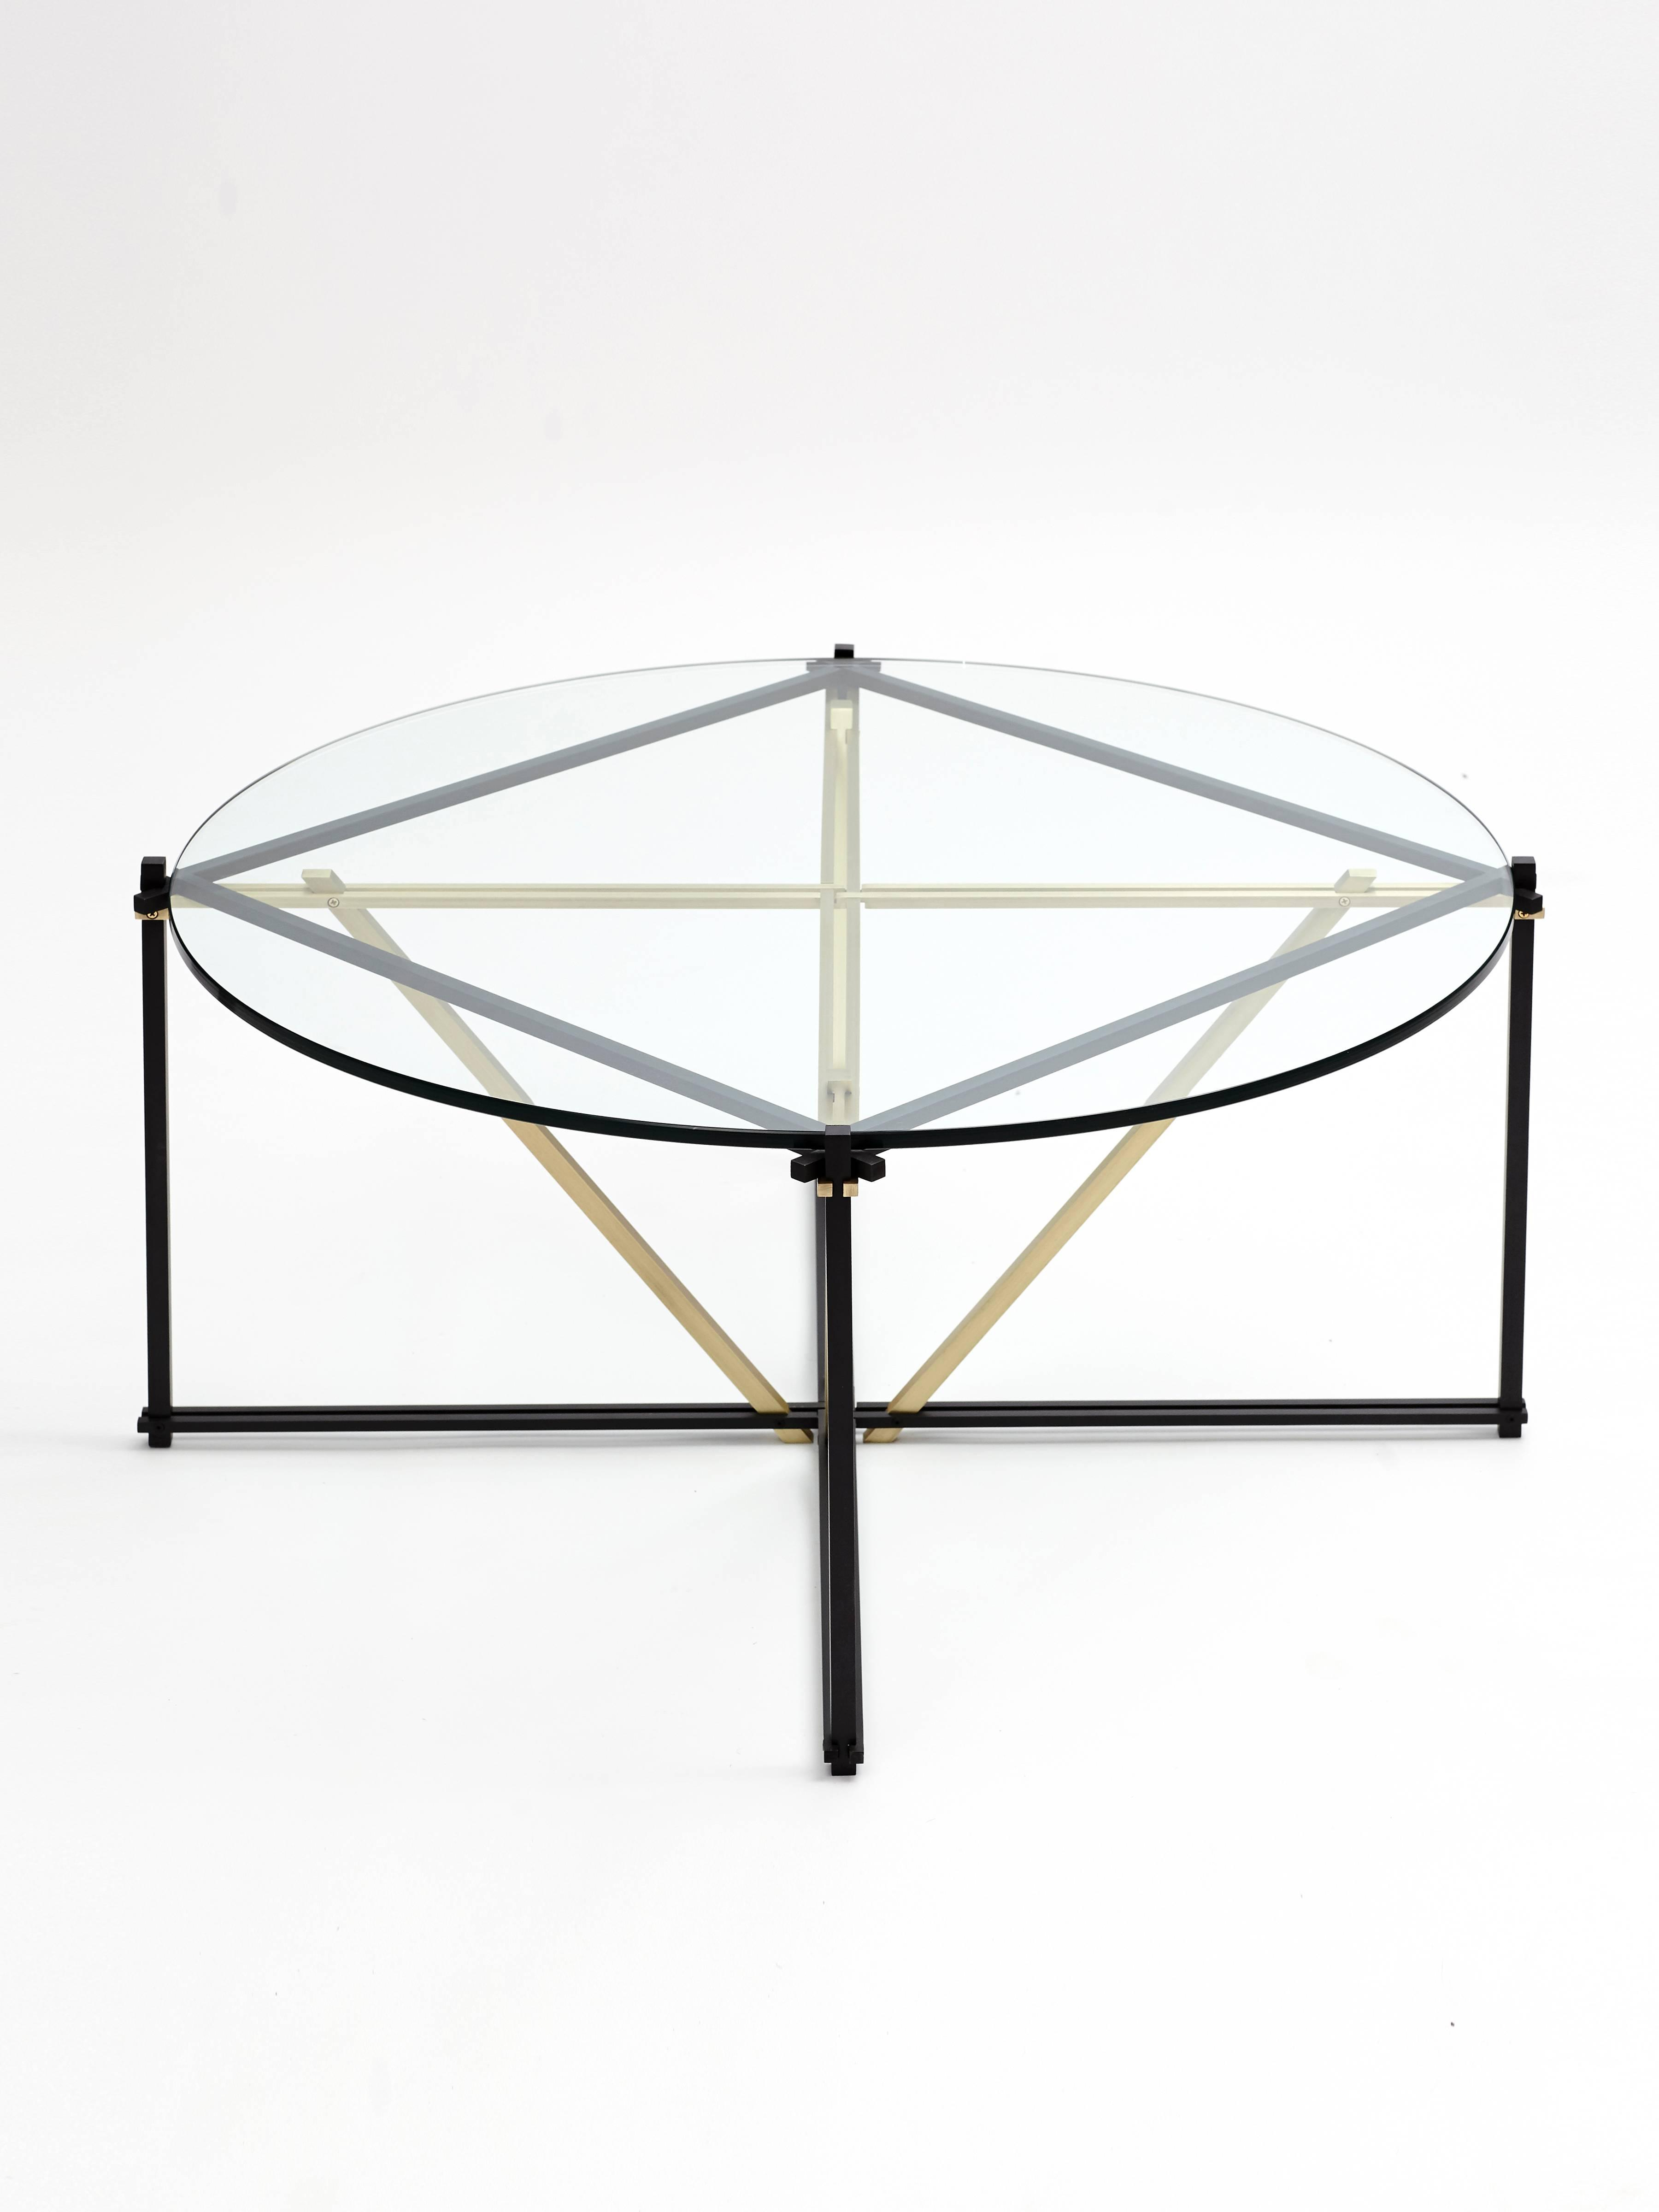 Trendy Tensegrity Coffee Table, Black And Satin Brass With Clear Glass For With Regard To Intertwine Triangle Marble Coffee Tables (View 6 of 20)